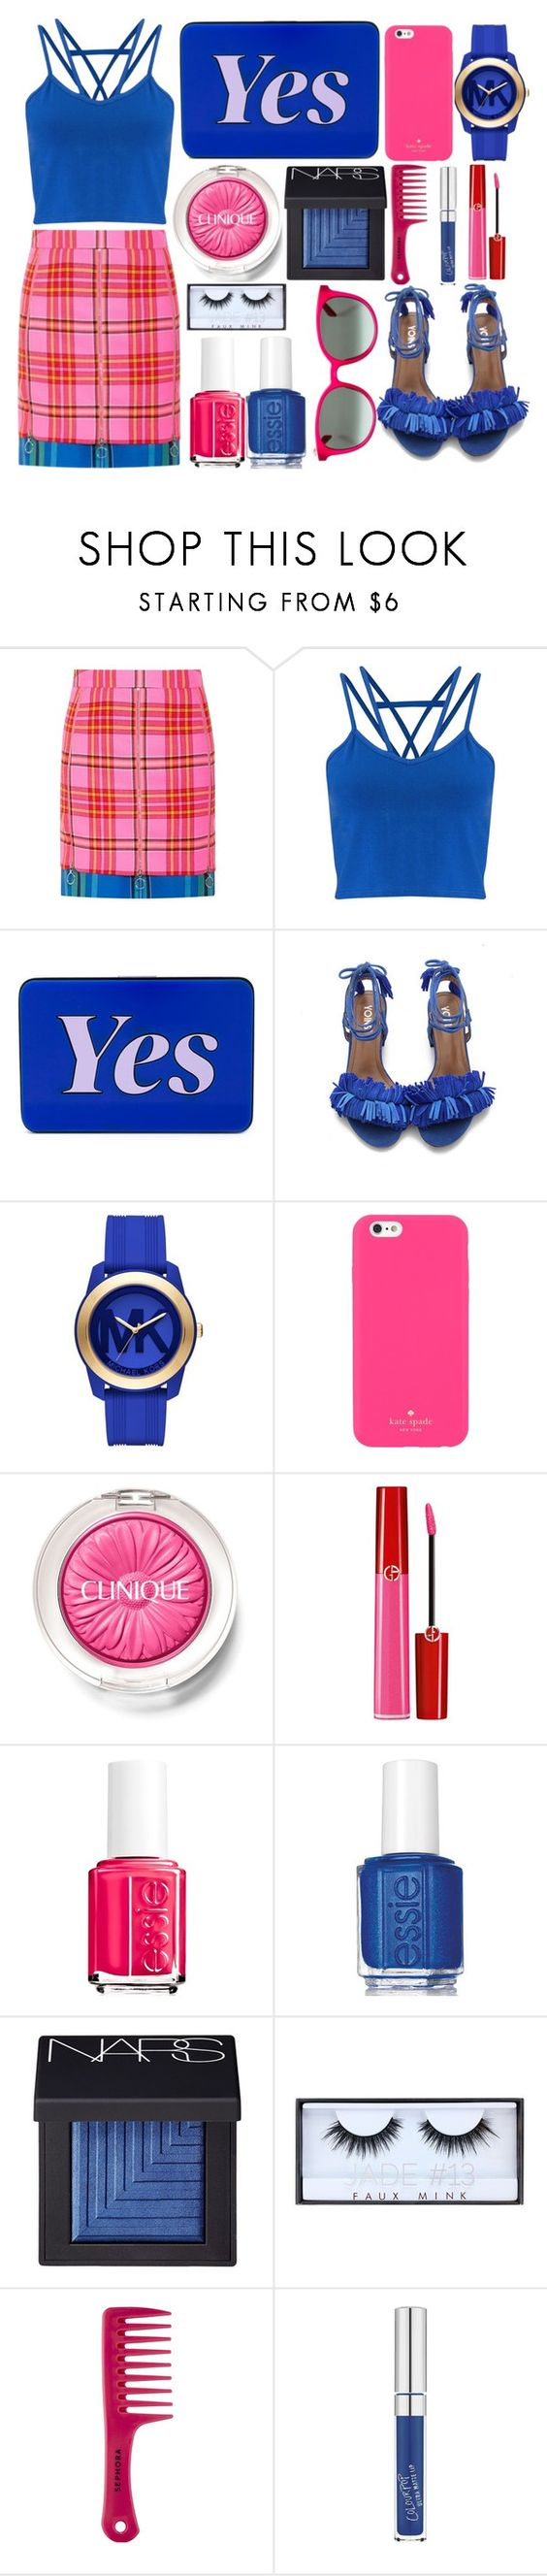 """Yes"" by juliehalloran ❤ liked on Polyvore featuring House of Holland, Miss Selfridge, Yazbukey, Michael Kors, Kate Spade, Clinique, Giorgio Armani, Essie, NARS Cosmetics and Huda Beauty"